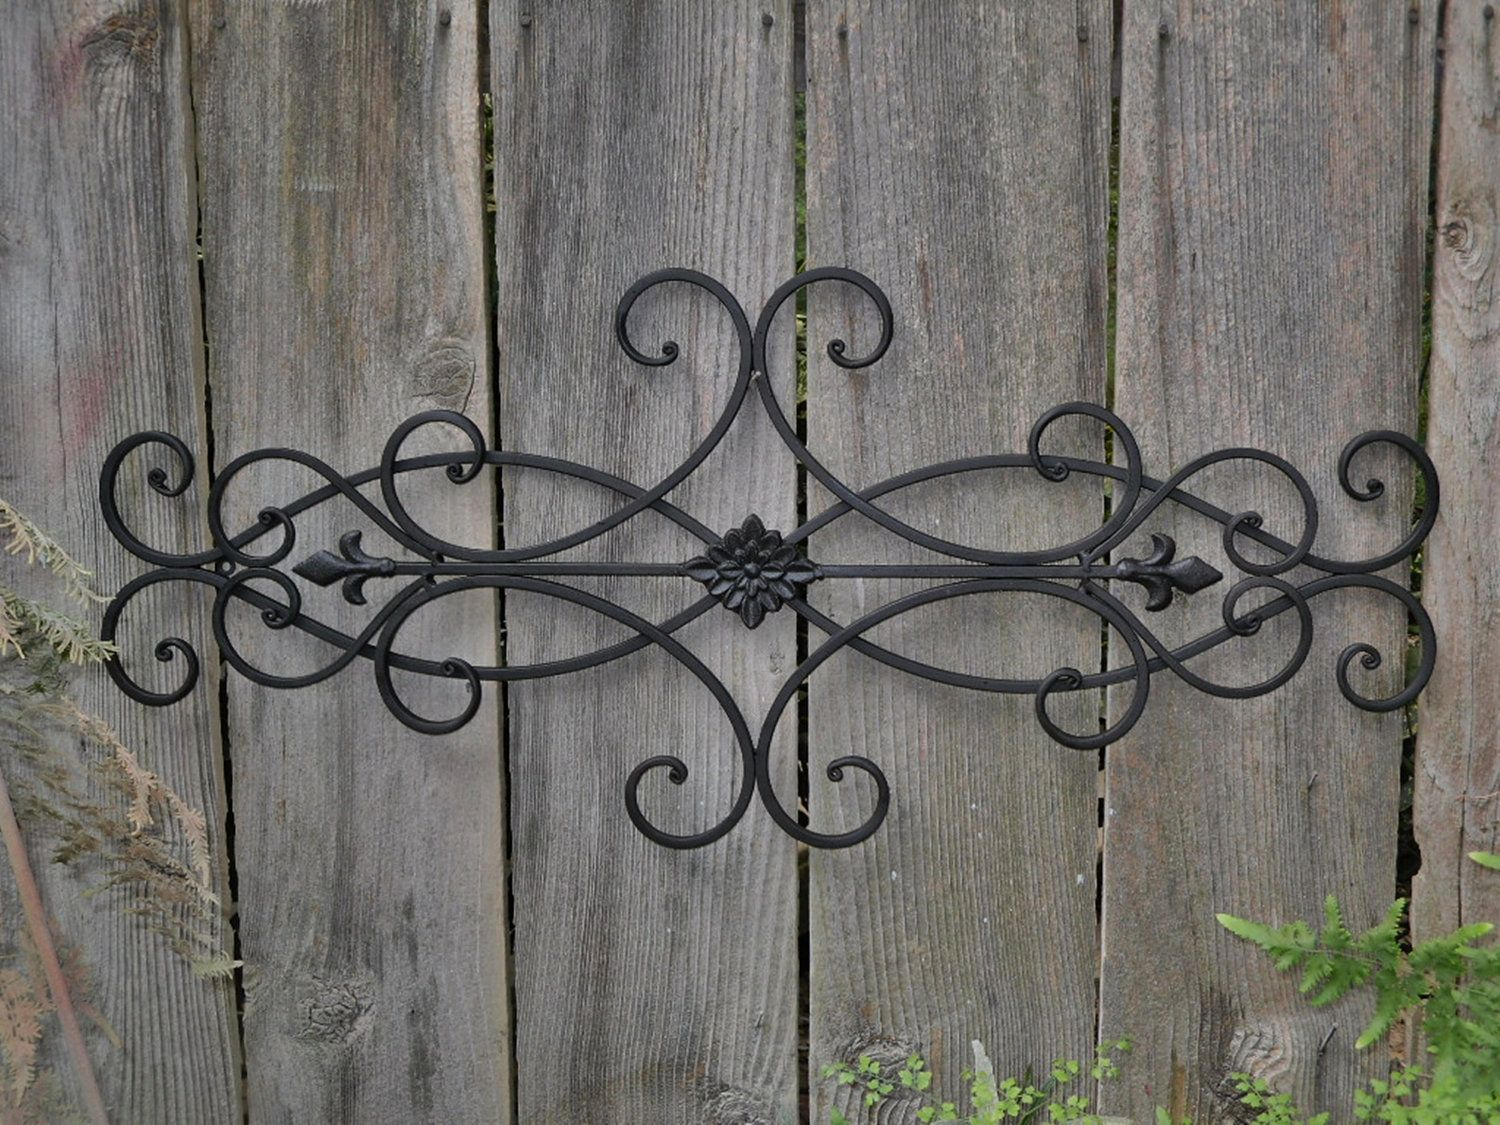 Wrought Iron Wall Deco / Fleur de Lis / Shabby Chic Decor / Bedroom Wall  Decor / Kitchen Decor